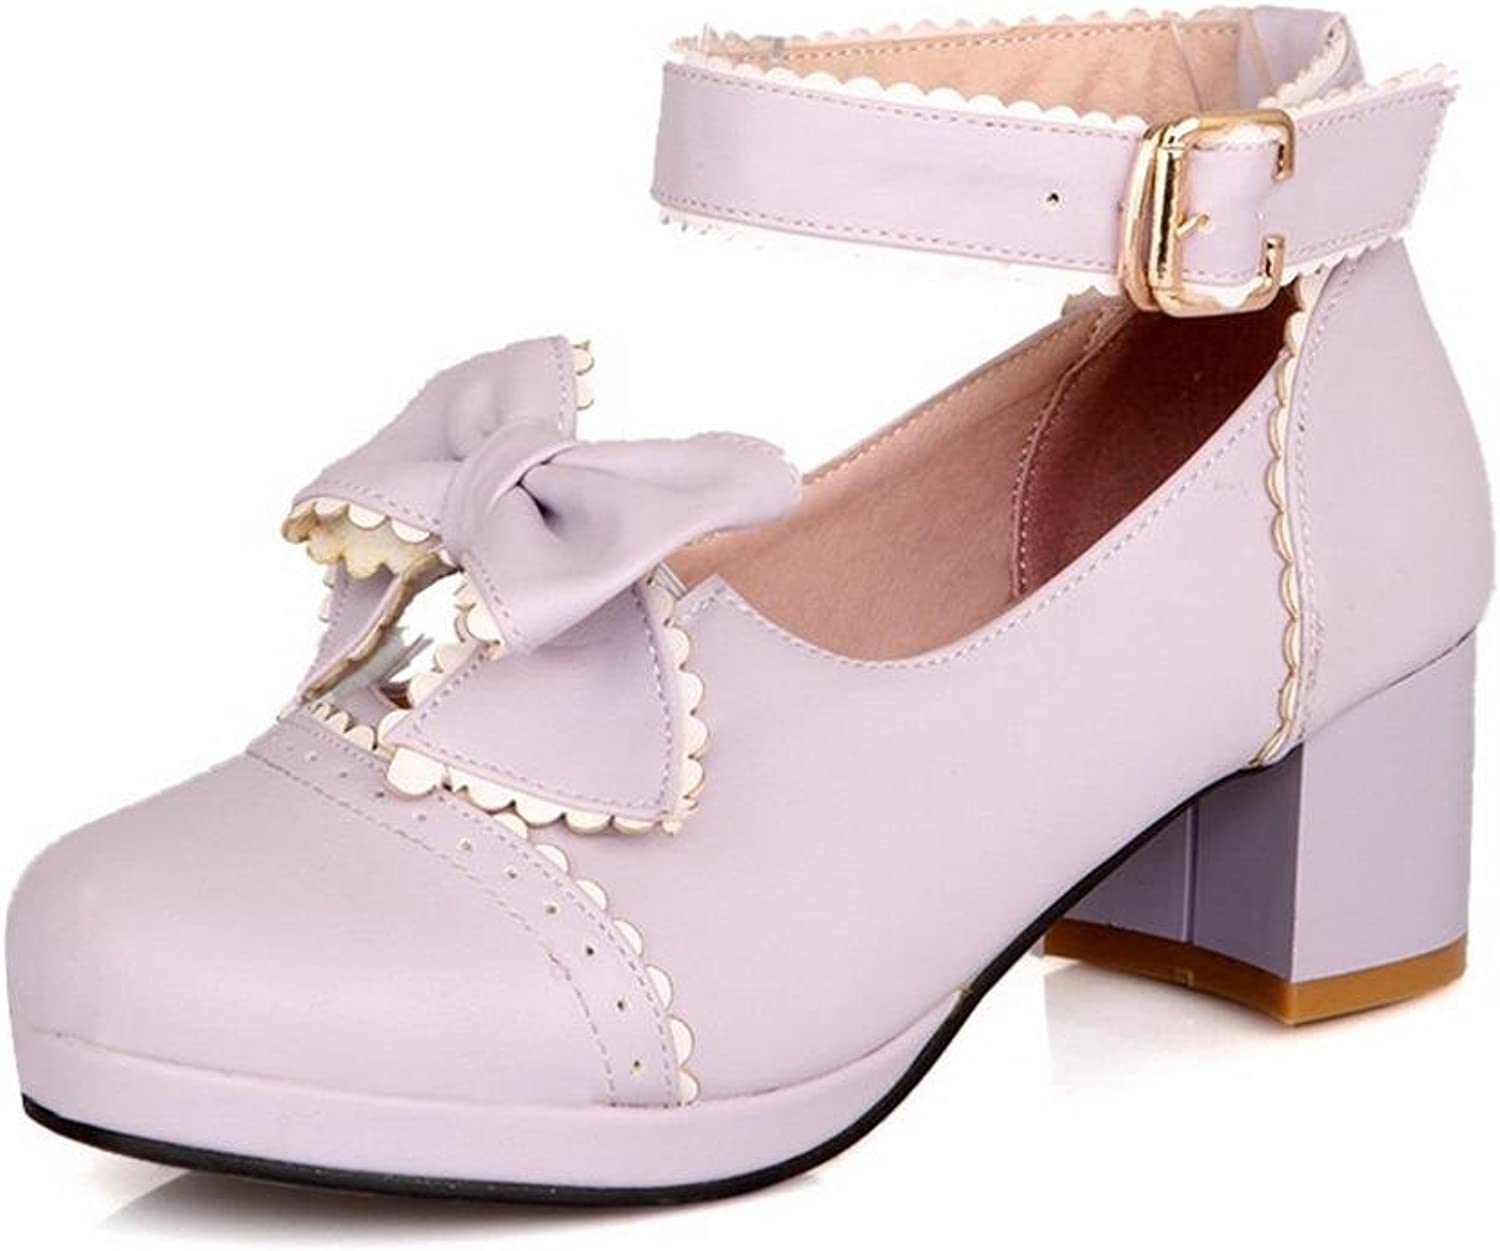 WeiPoot Women's Buckle Round Closed Toe Kitten Heels Pu Assorted color Pumps-shoes